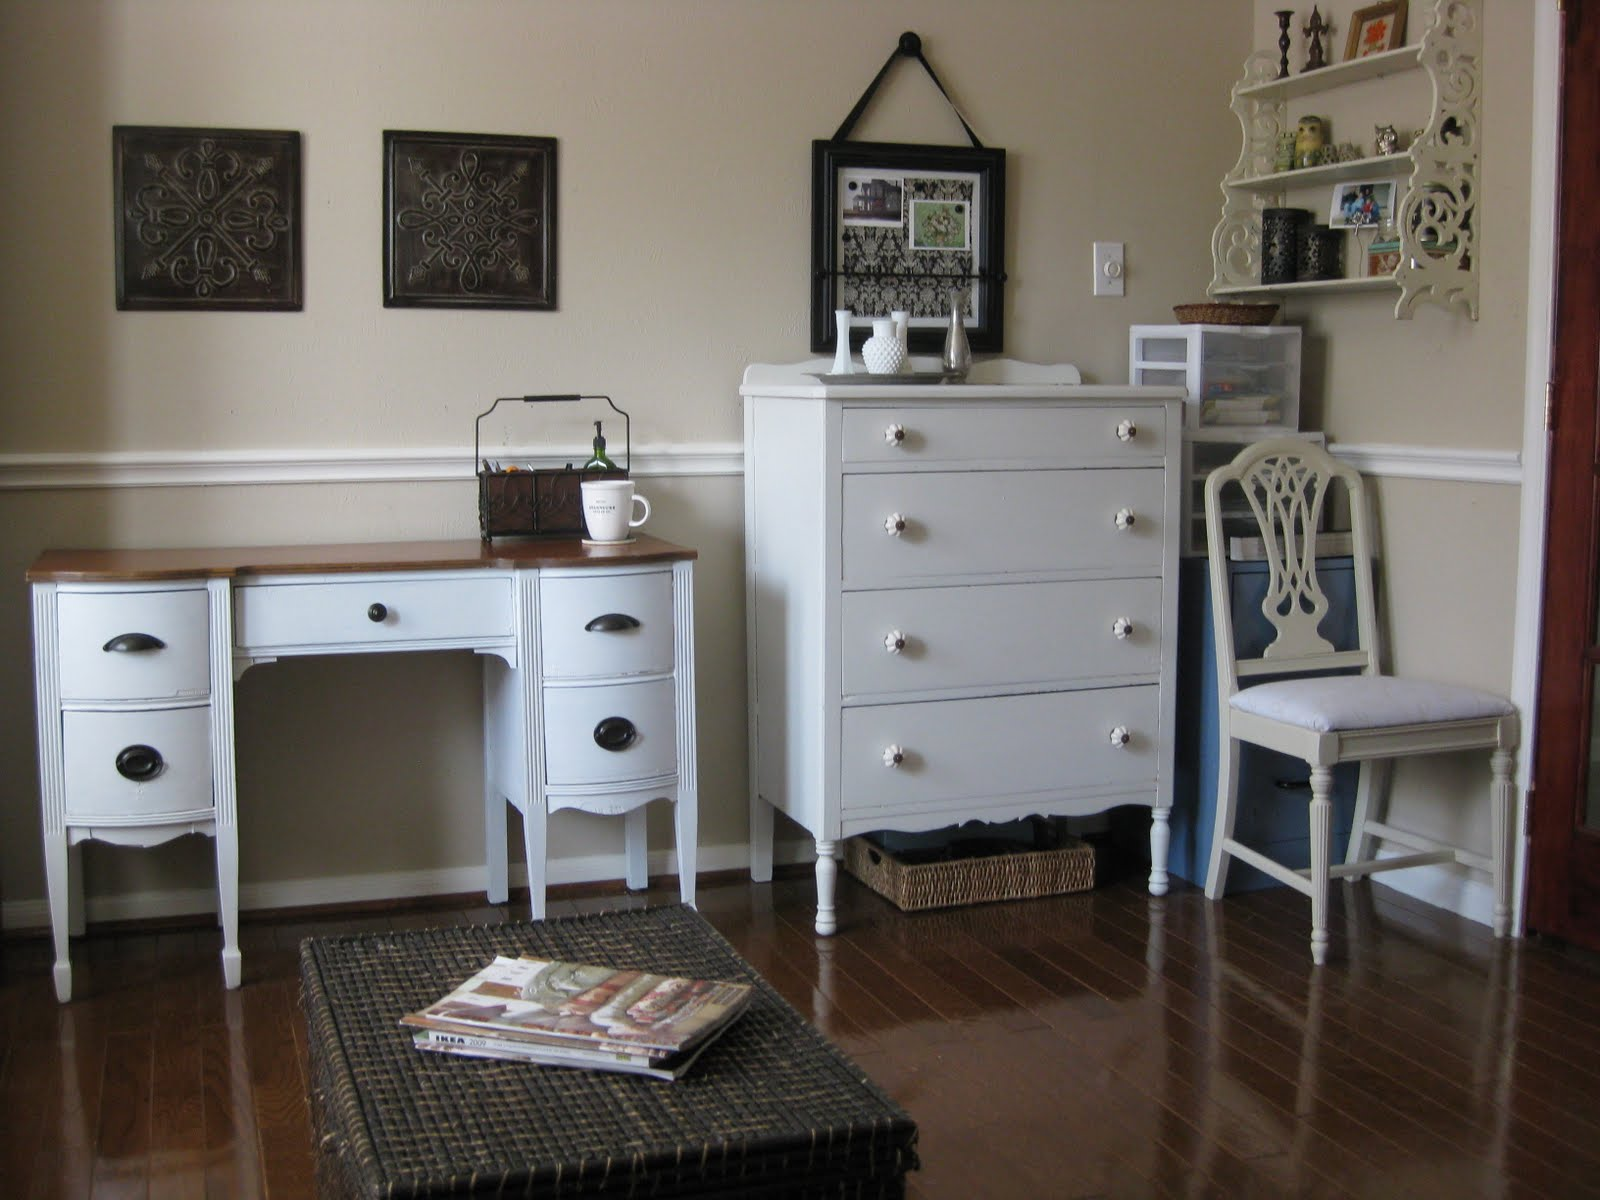 kiwi in texas garage sale chest of drawers. Black Bedroom Furniture Sets. Home Design Ideas